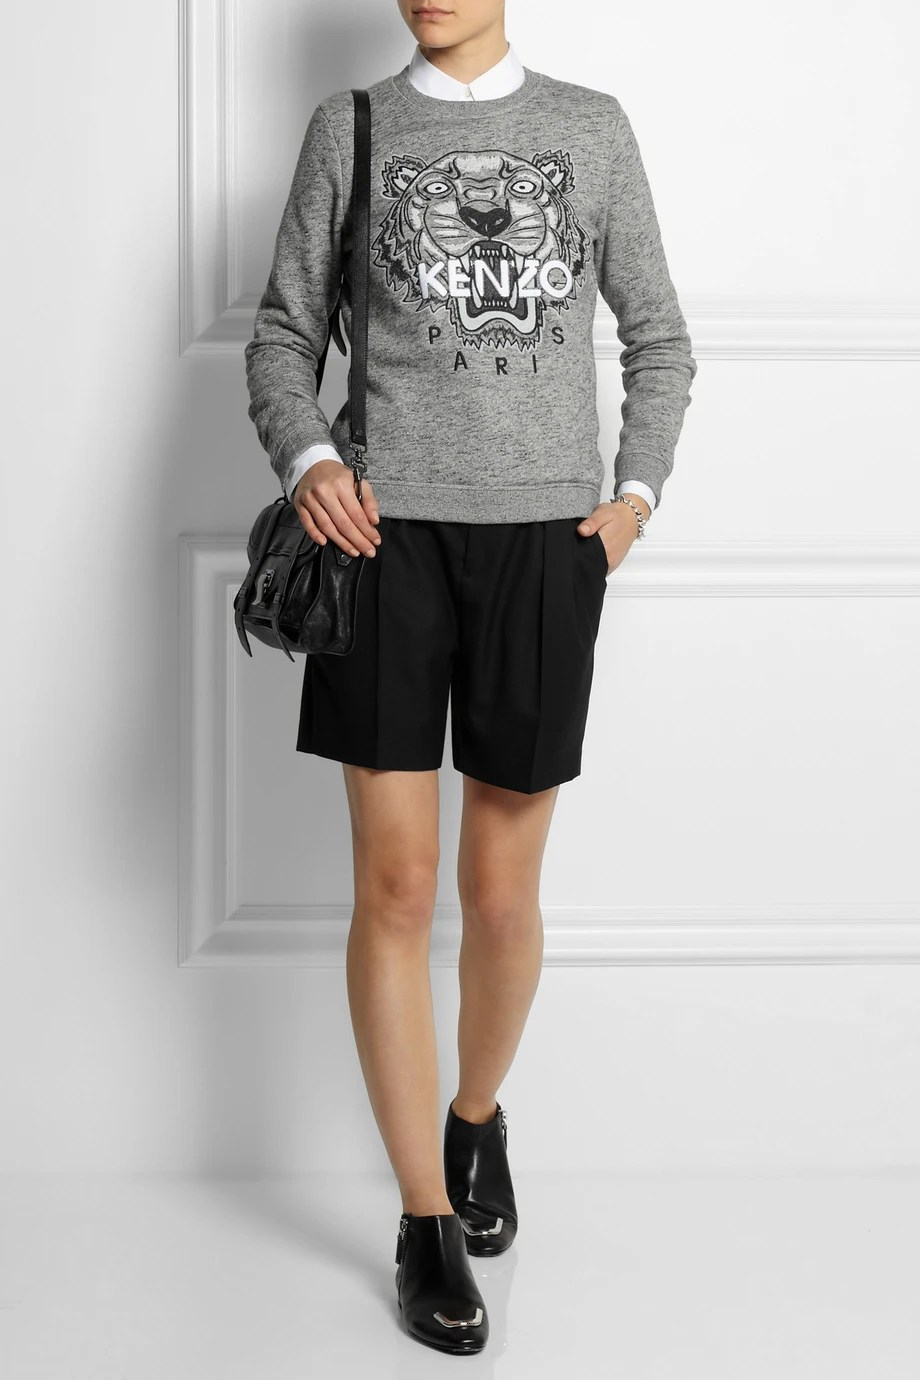 KENZO  outfit